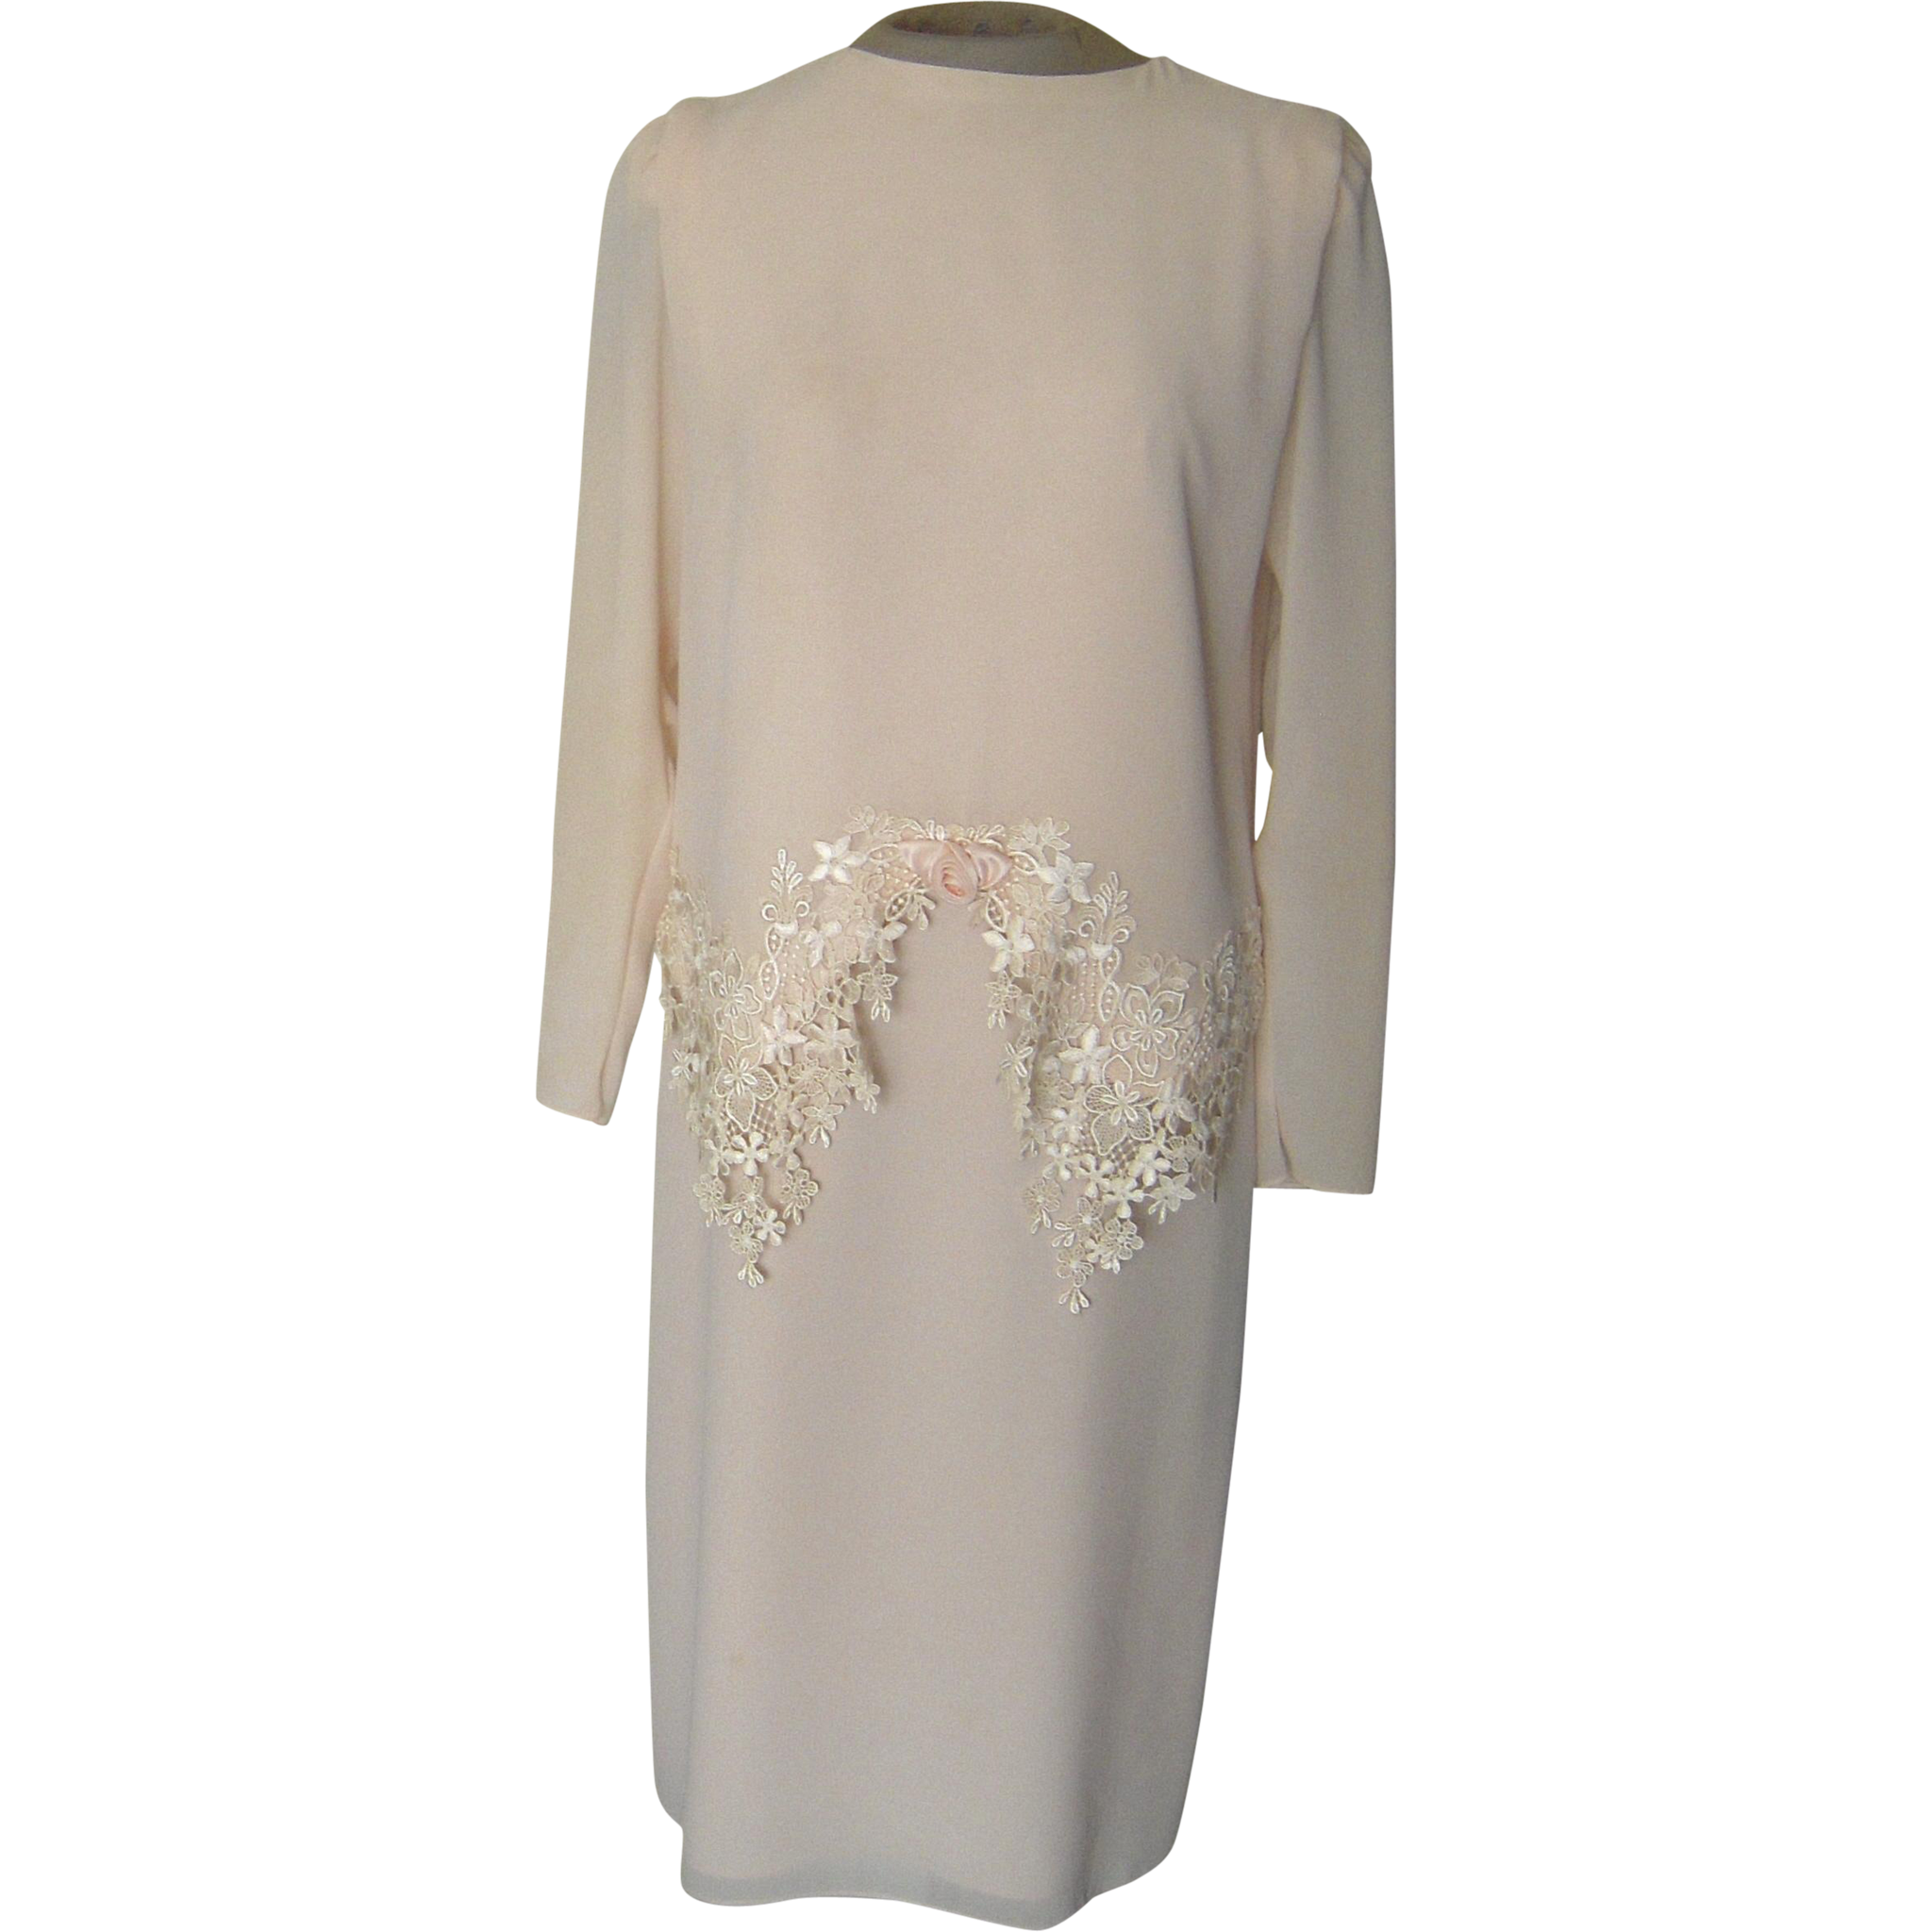 Light Pink Ursula of Switzerland Dress with Lace from beca